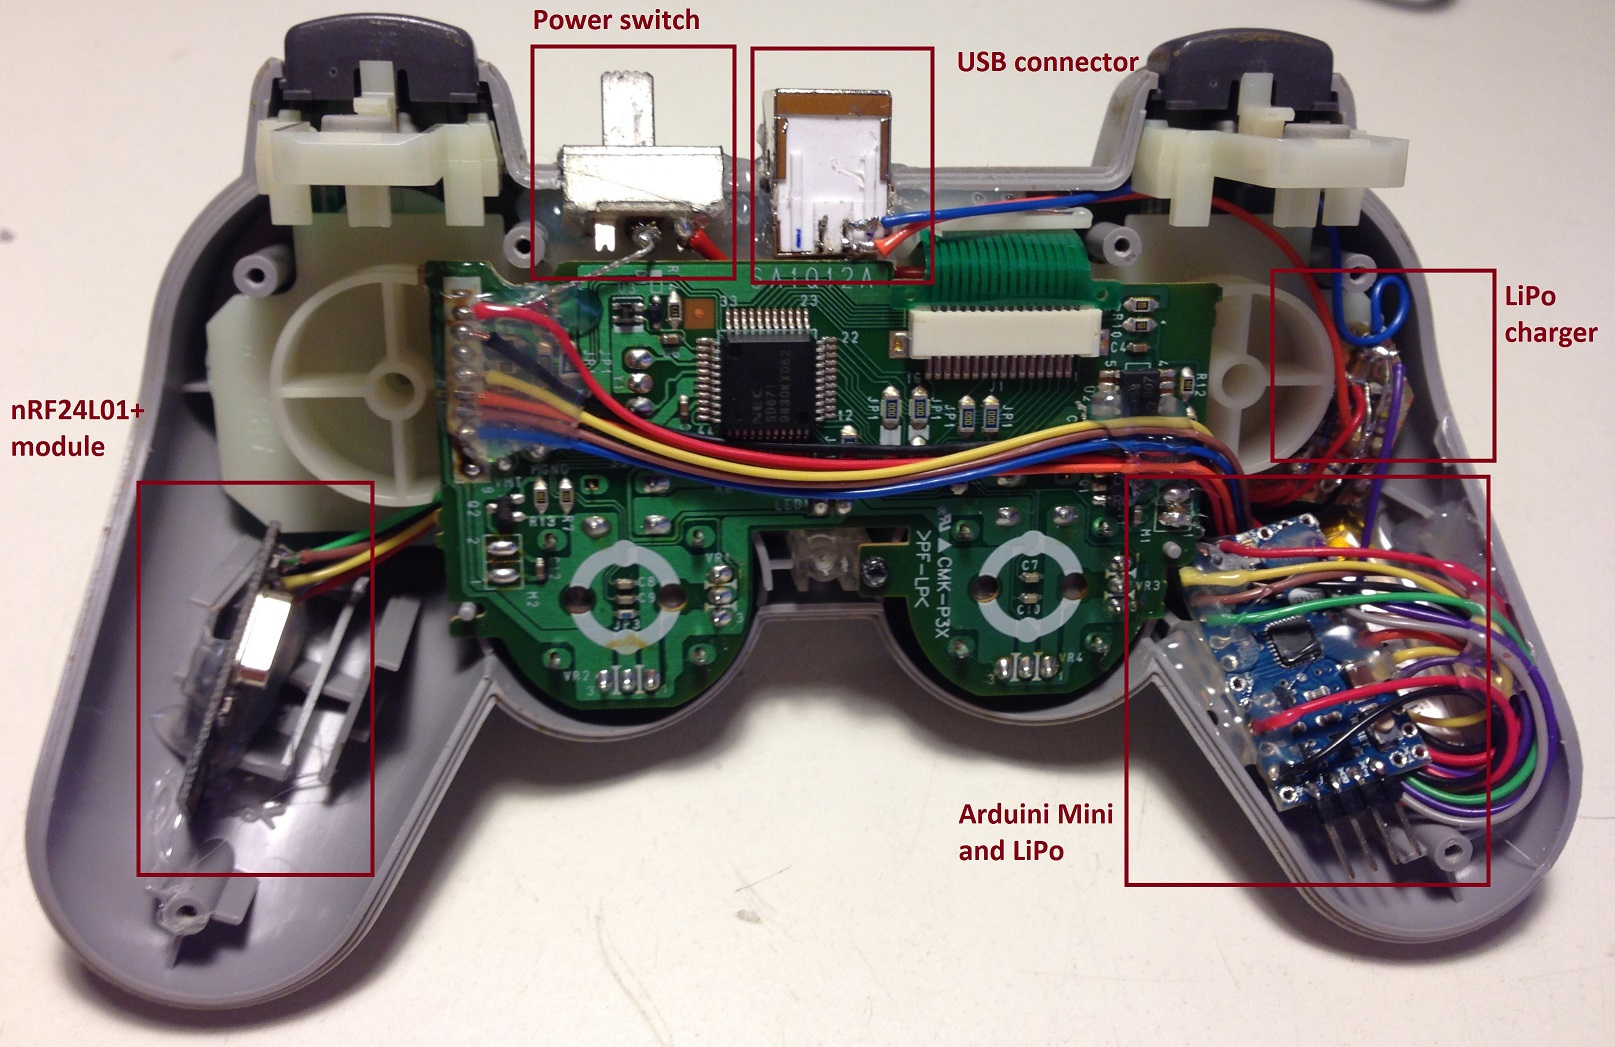 Playstation controller hack with Arduino MINI and nRF24L01 | Ps1 Joystick Wiring Diagram |  | Fabio's blog about electronics - Altervista